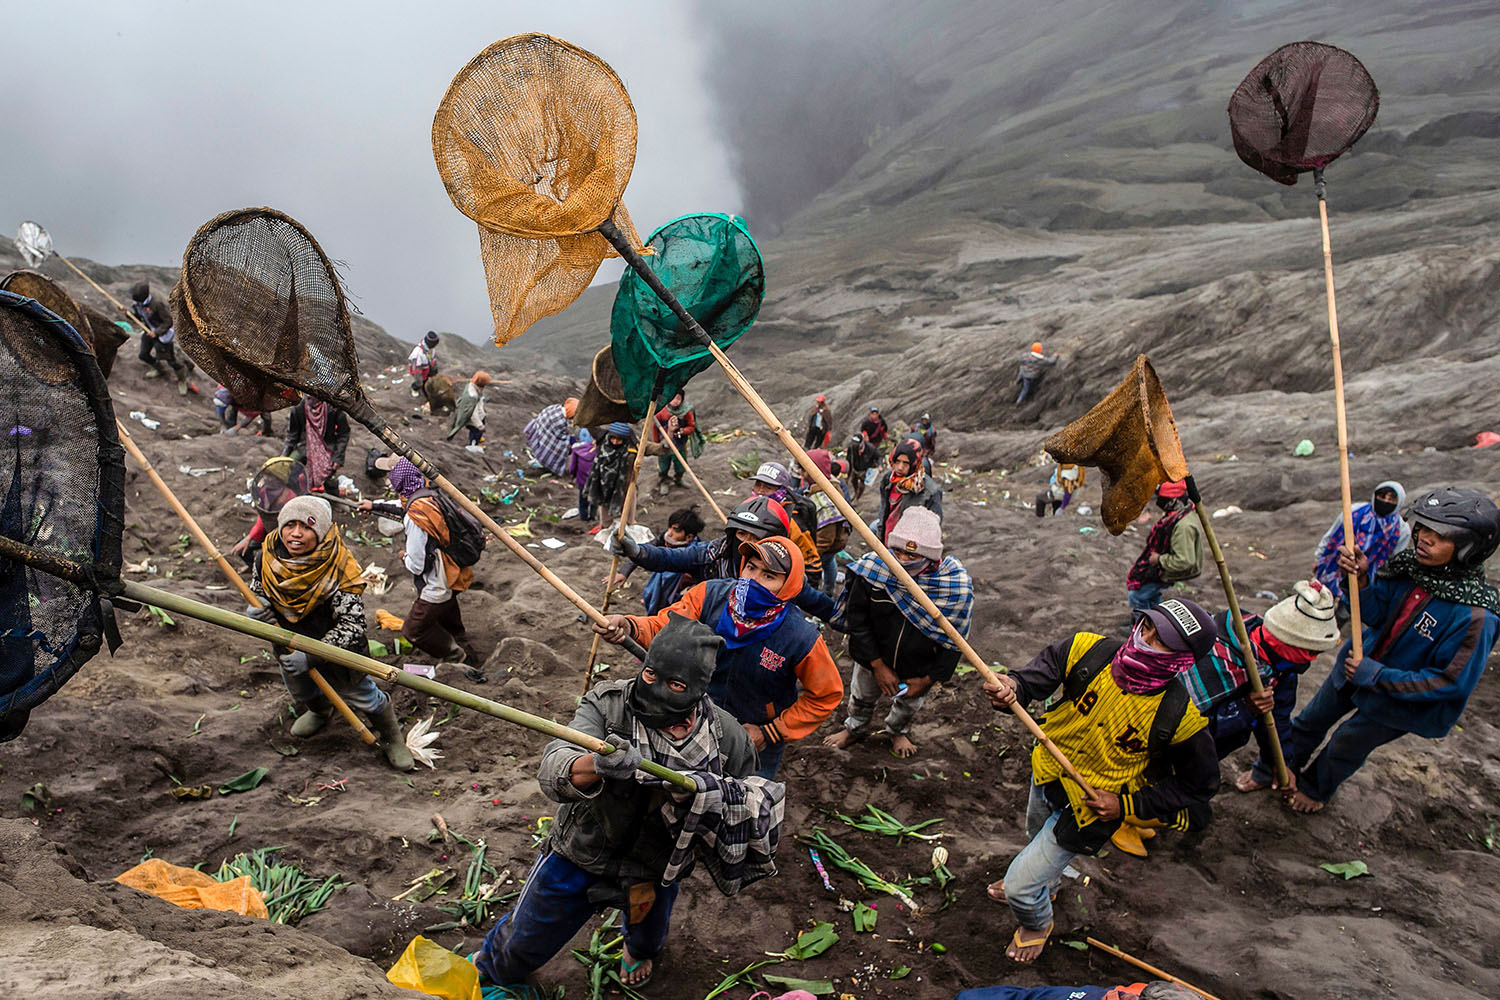 People try to catch offerings thrown off the summit of the active Mount Bromo volcano by Tengger tribe members and local tourists in Probolinggo, East Java province, Indonesia, as part of the Yadnya Kasada Festival on July 18. During the festival, the Tenggerese climb the volcano and seek blessings of the main deity by presenting offerings of rice, fruit, livestock, and other items. JUNI KRISWANTO/AFP/Getty Images